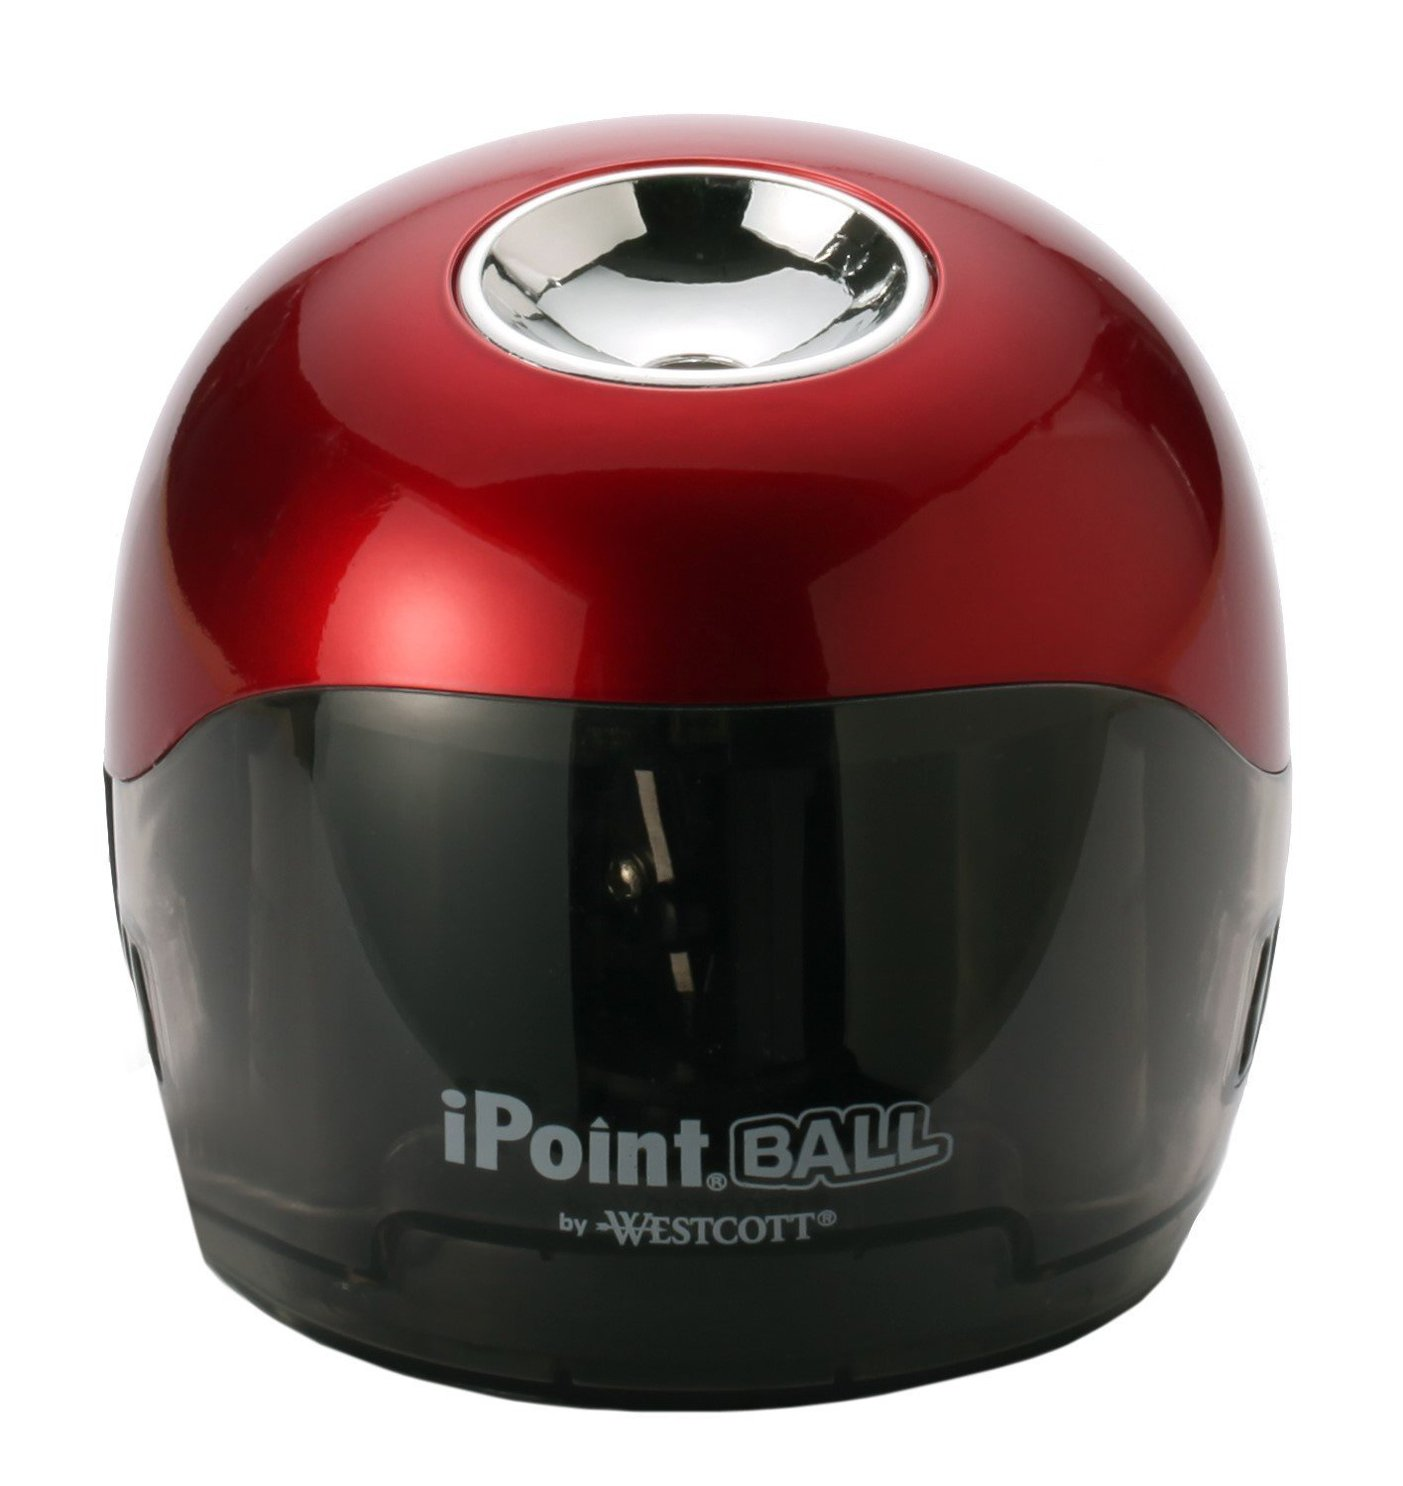 Westcott 6.5'' x 3'' x 6'' iPoint Ball Pencil Sharpener, Case of 12, Red/Black (15570)